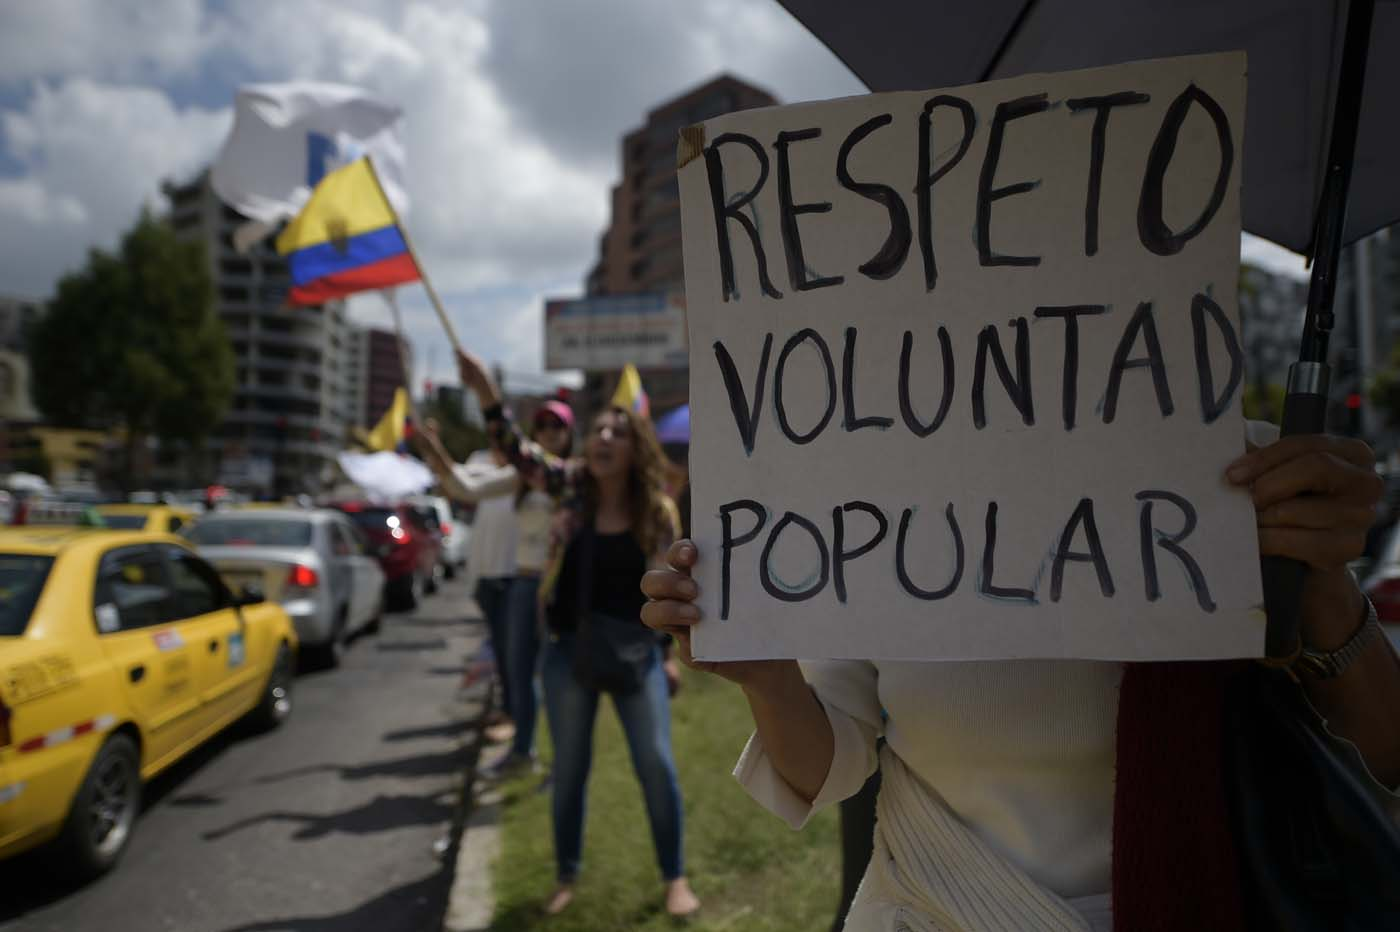 """Supporters of Ecuadorean presidential candidate for the CREO party Guillermo Lasso, protest with a sign reading """"Respect popular will"""" outside the National Electoral Council in Quito on February 20, 2017, as they wait for the final results of Sunday's presidential election. Leftist Lenin Moreno was crossing his fingers Monday for outright victory in Ecuador's presidential vote, but risked being forced into a runoff that could shift the country to the right. With nearly 89 percent of the votes counted, he was still short with 39.10 percent, against 28.3 percent for his conservative competitor, Guillermo Lasso. / AFP PHOTO / RODRIGO BUENDIA"""